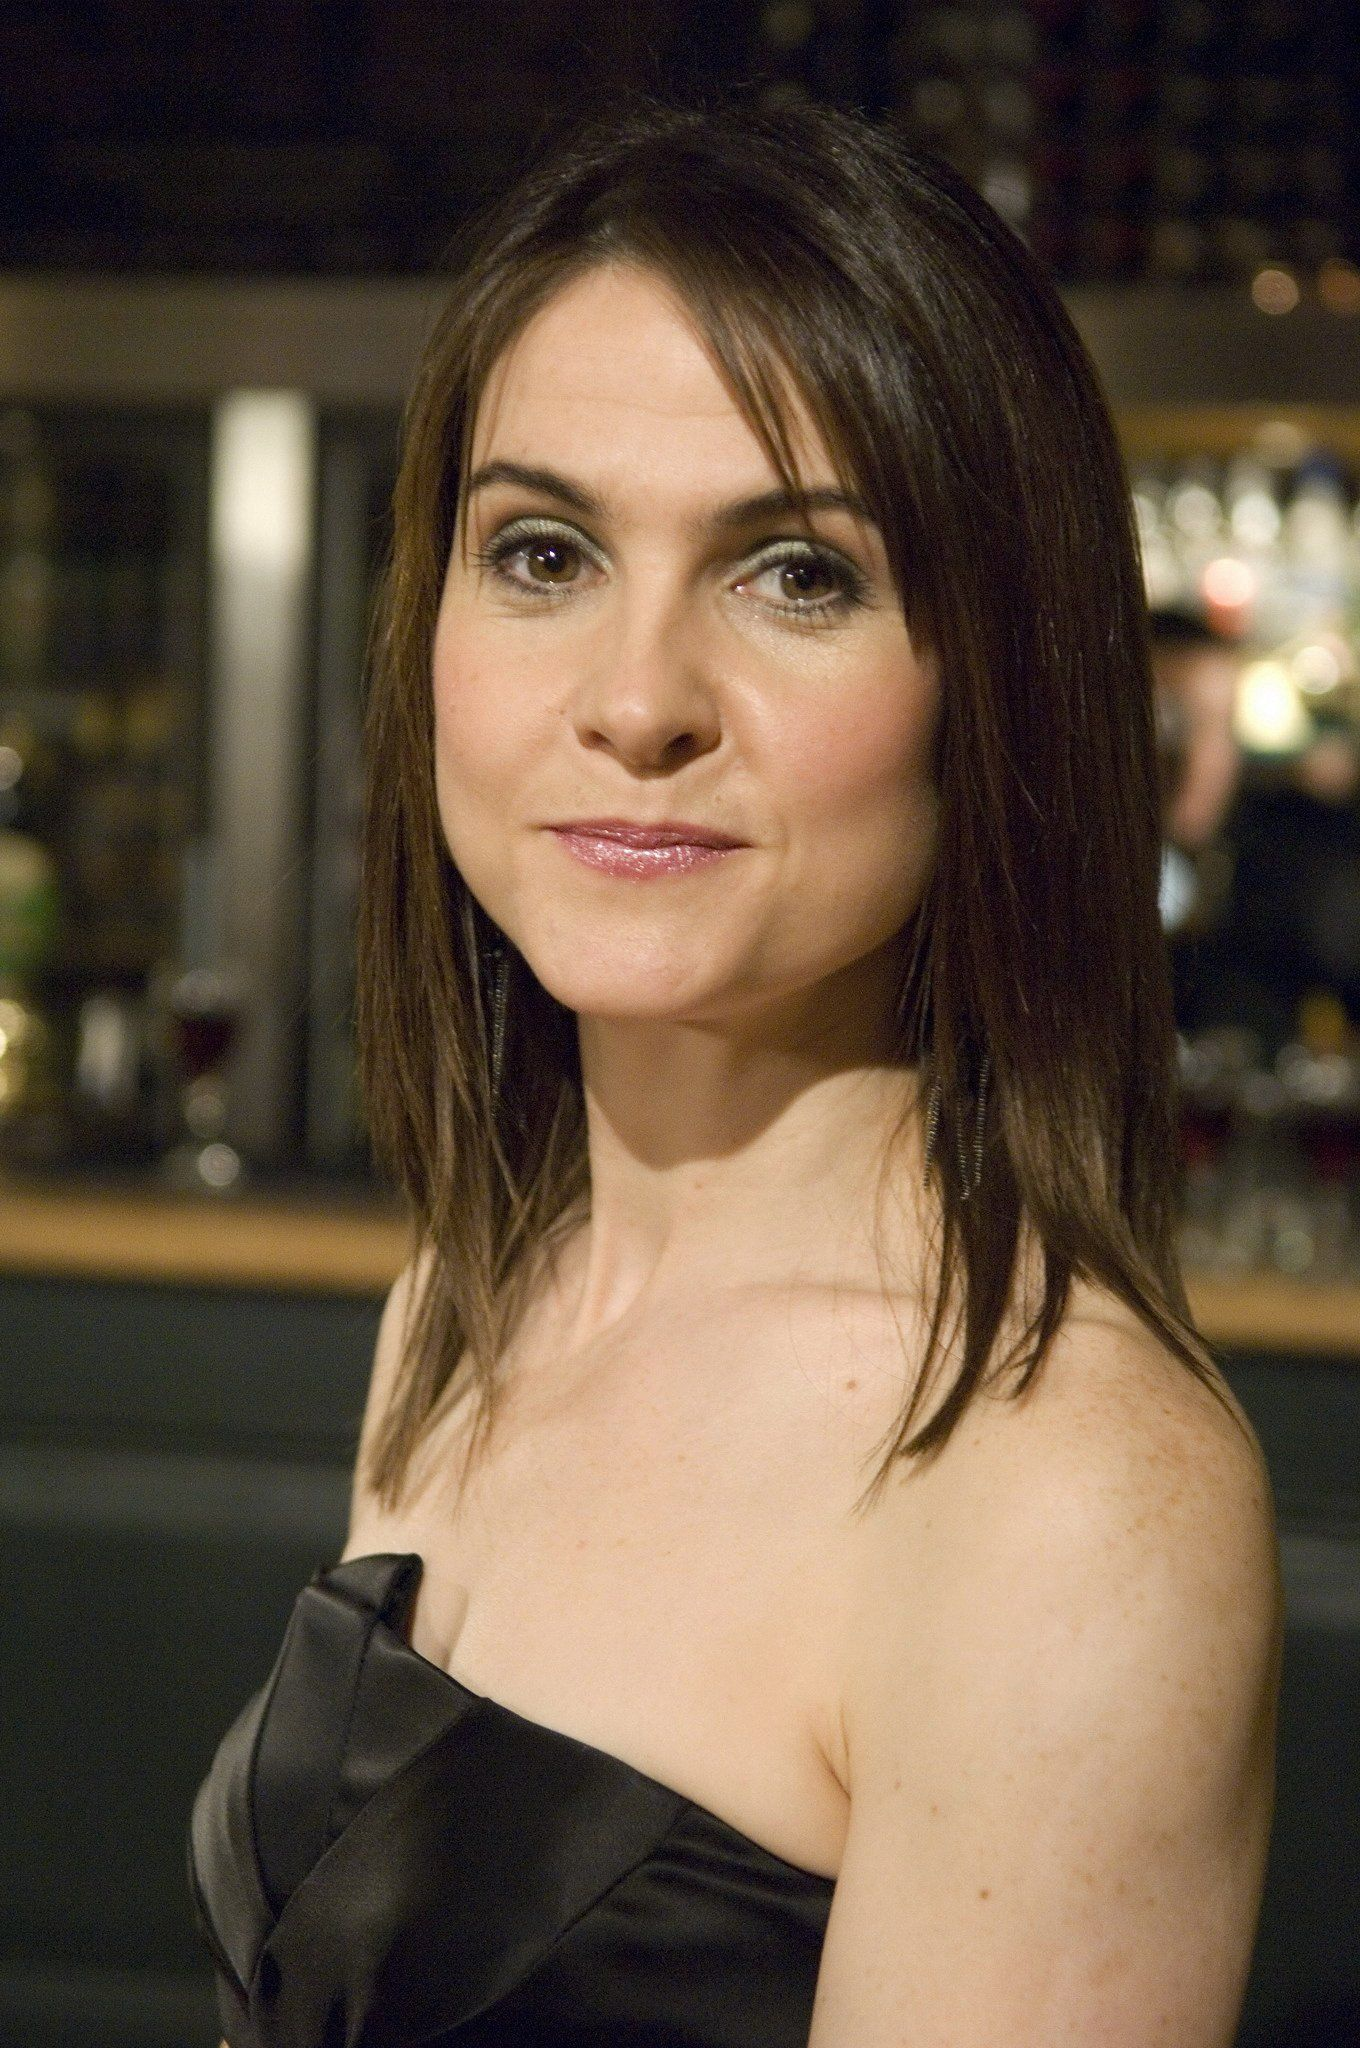 Emma Kearney (actress) Emma Kearney (actress) new photo